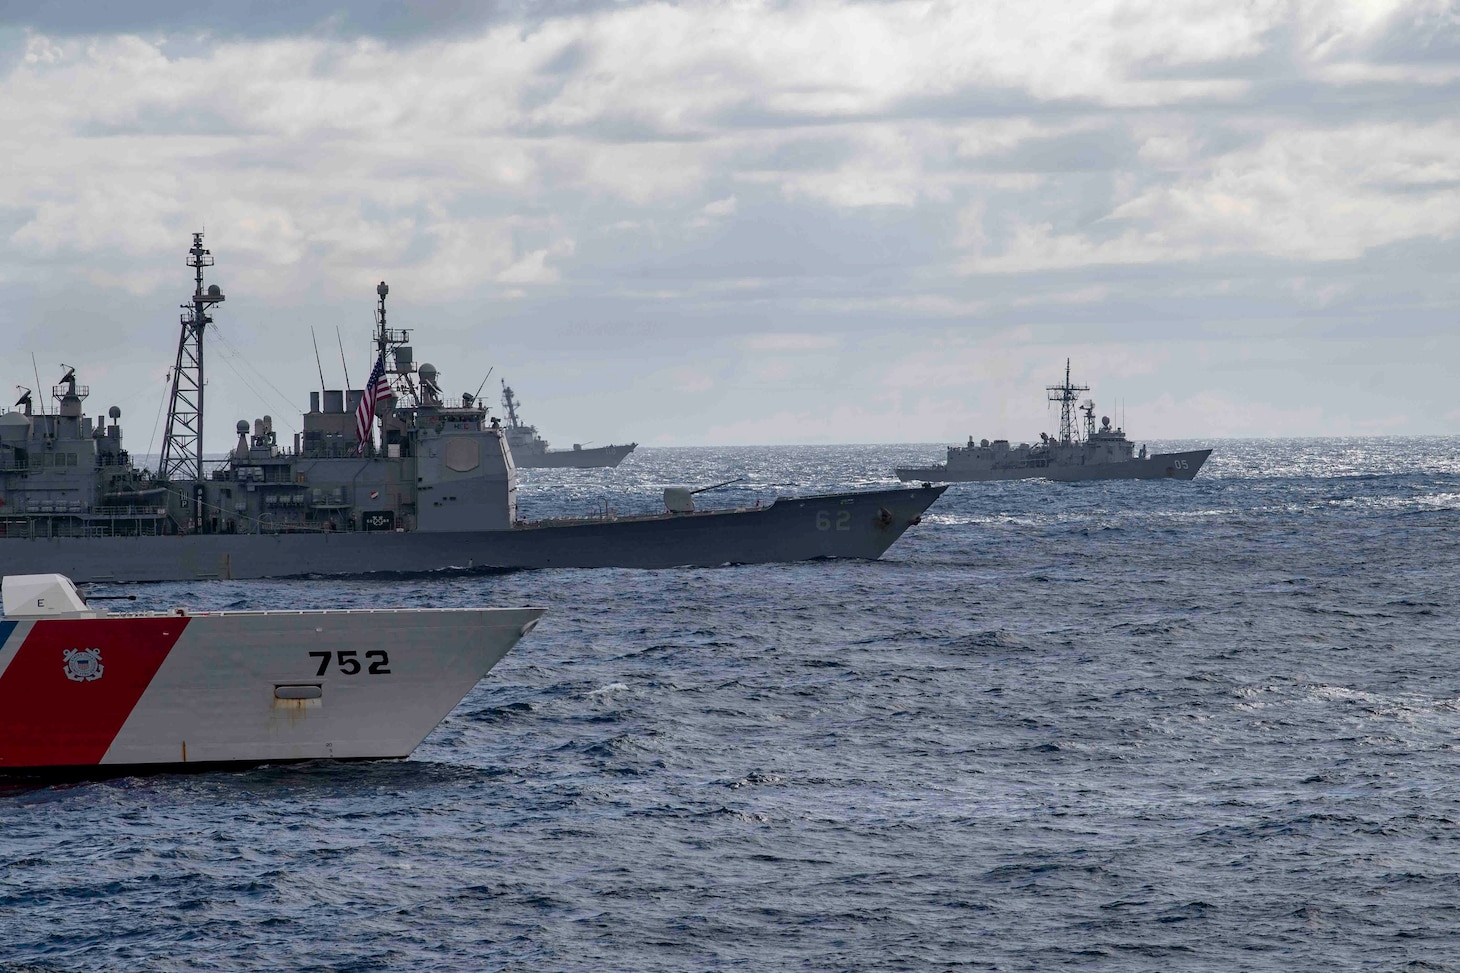 TASMAN SEA (July 11, 2019) The USCGC Stratton (WMSL 752), far left, USS Chancellorsville (CG 62), left, HMAS Melbourne (FFG 05), center, and USS William P. Lawrence (DDG 110) transit with the Arleigh Burke-class guided-missile destroyer USS McCampbell (DDG 85) during a photo exercise (PHOTOEX) as part of the exercise Talisman Sabre 2019. McCampbell, part of the Wasp Expeditionary Strike Group, with embarked 31st Marine Expeditionary Unit, is currently participating in Talisman Sabre 2019 off the coast of Northern Australia. A bilateral, biennial event, Talisman Sabre is designed to improve U.S. and Australian combat training, readiness and interoperability through realistic, relevant training necessary to maintain regional security, peace and stability.